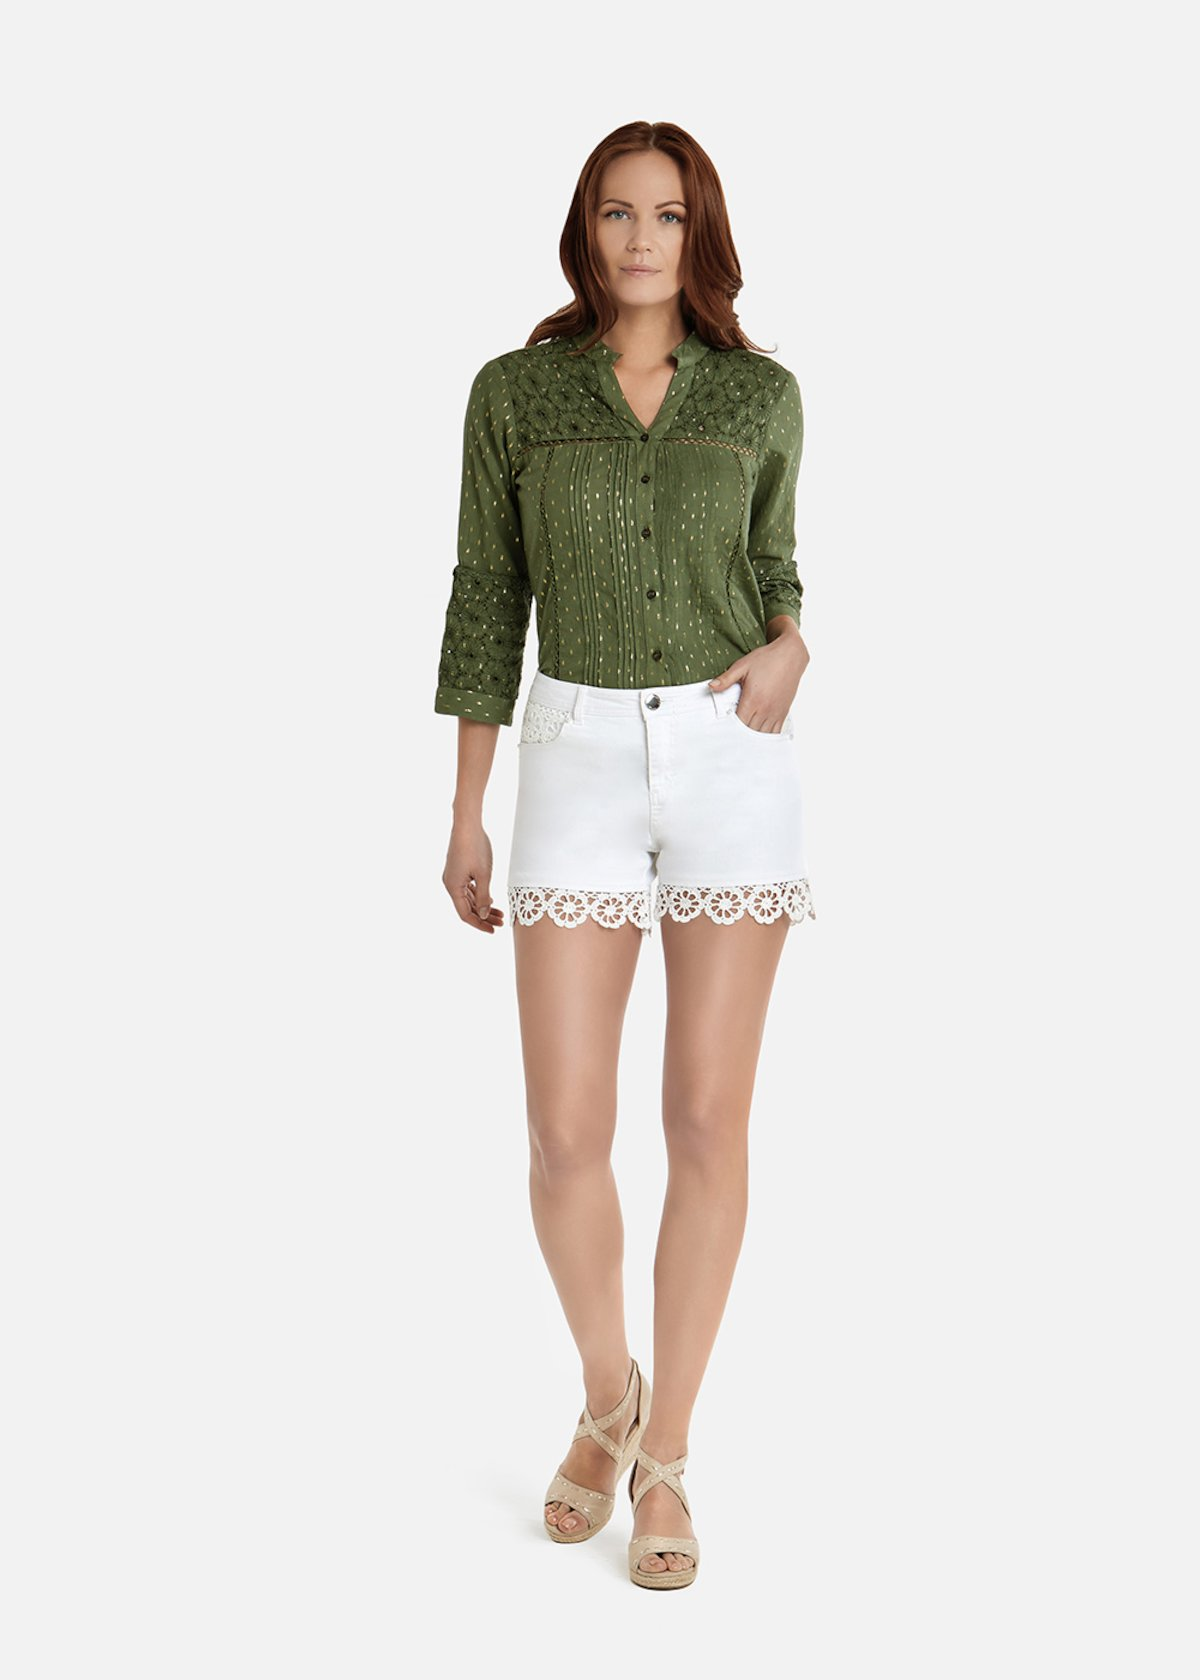 Born shorts with crochet details - White